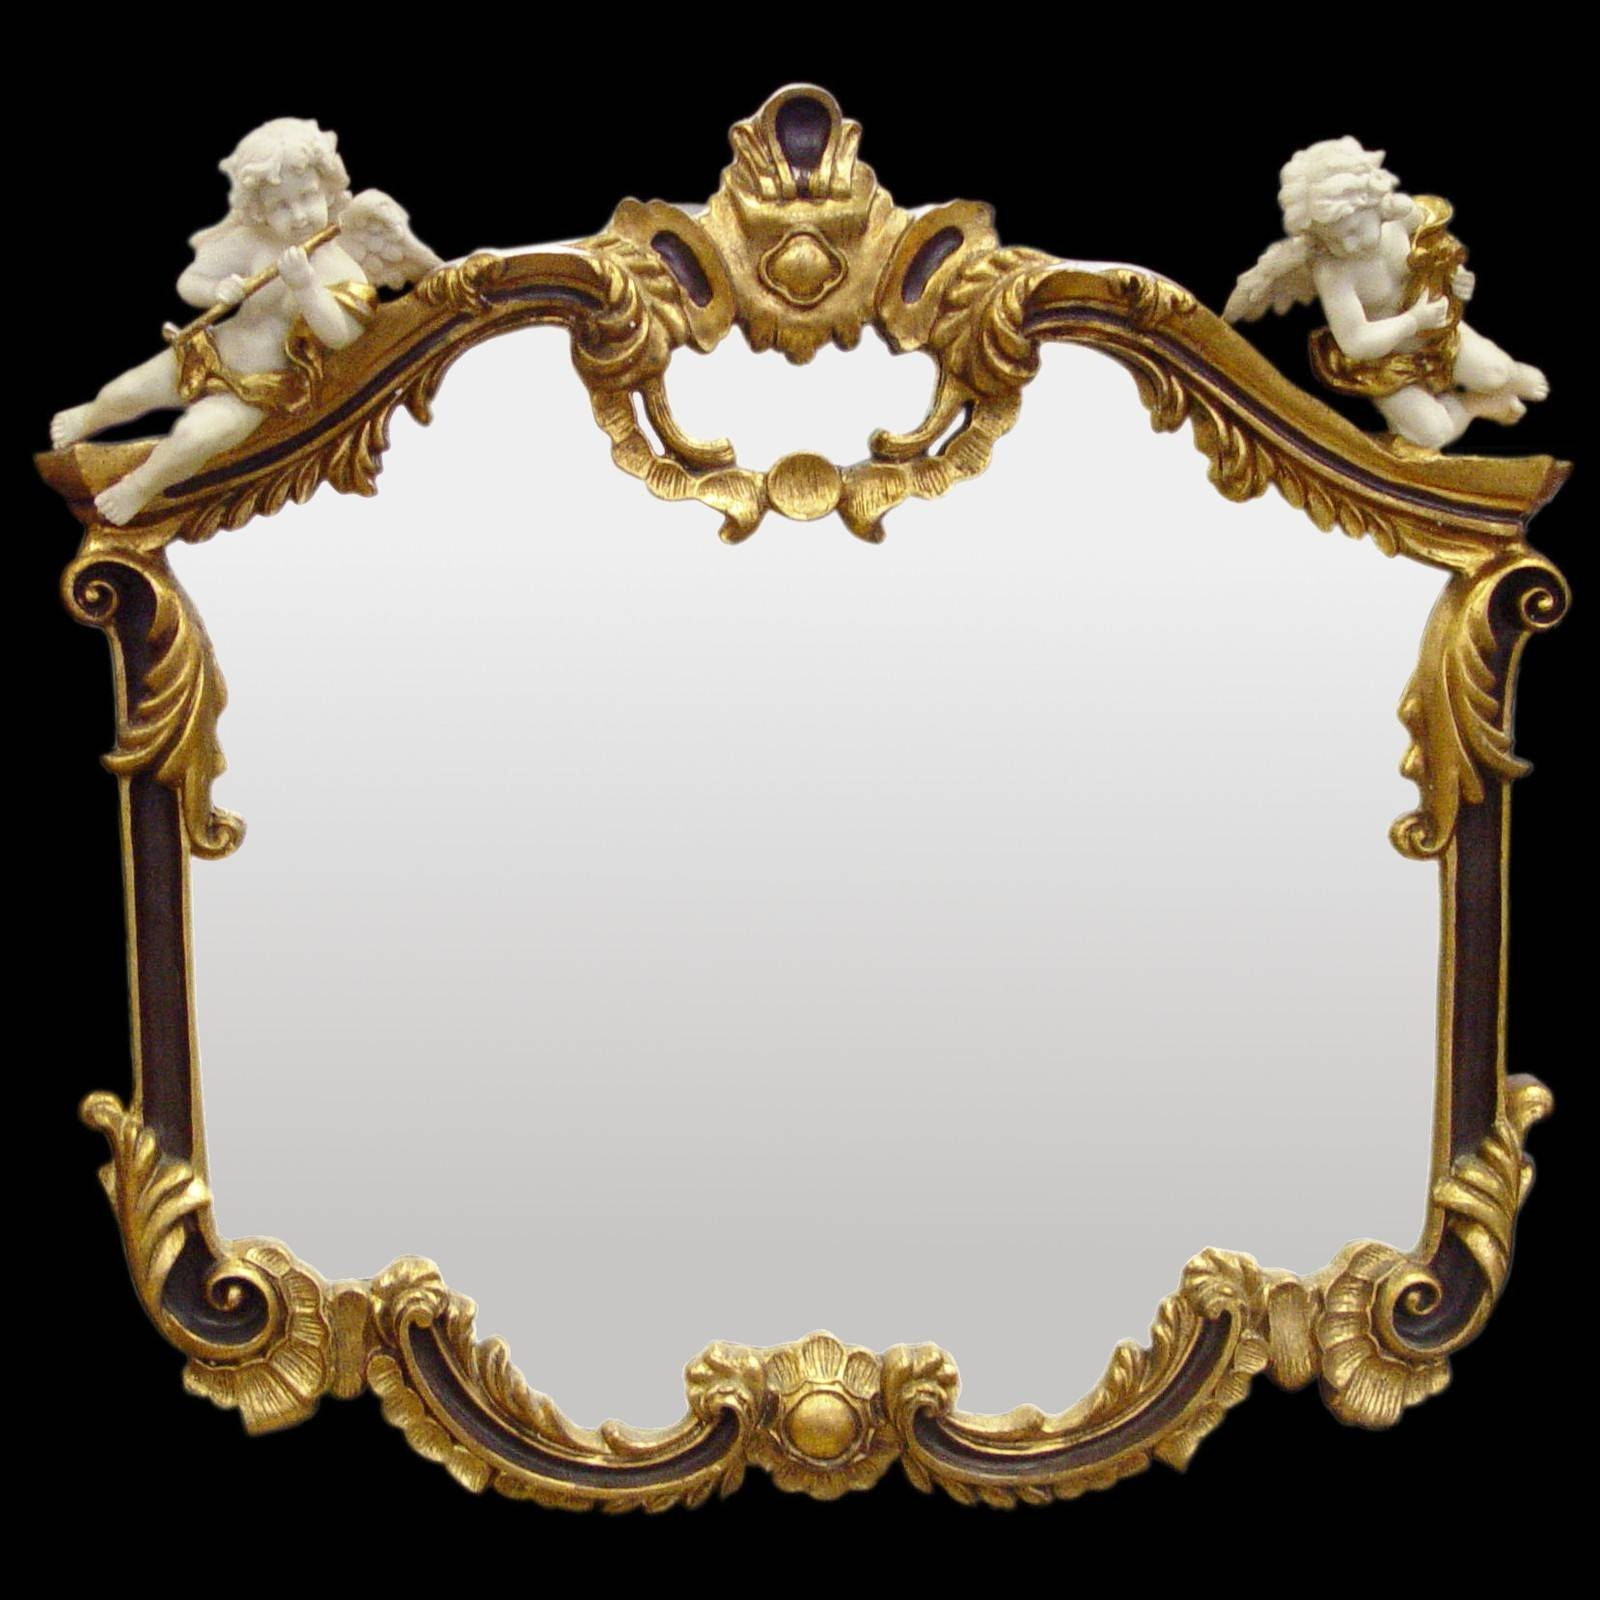 Baroque Mirror Wall Mirror Gold Red 2 White Music Angel Figurines regarding Baroque Wall Mirrors (Image 3 of 15)